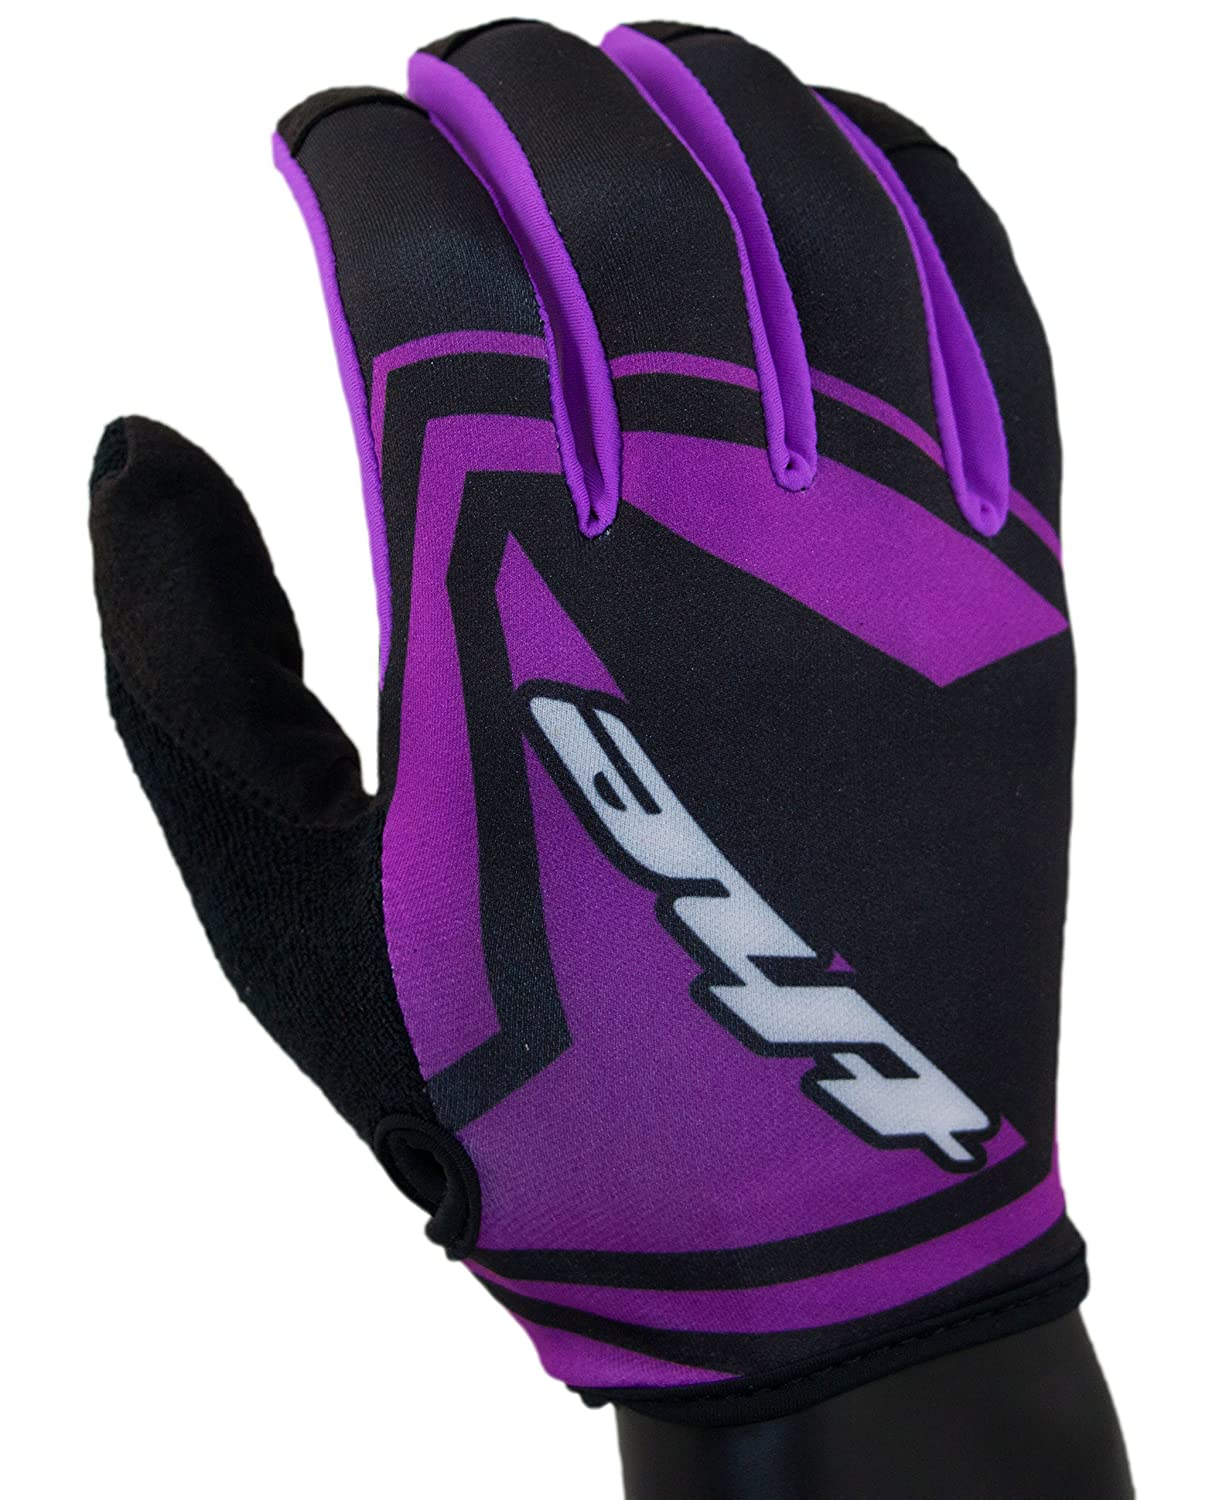 THE Industries Youth Lightweight BMX and Mountain Bike Gloves Black//Pink X-Large VSI Products YTHG